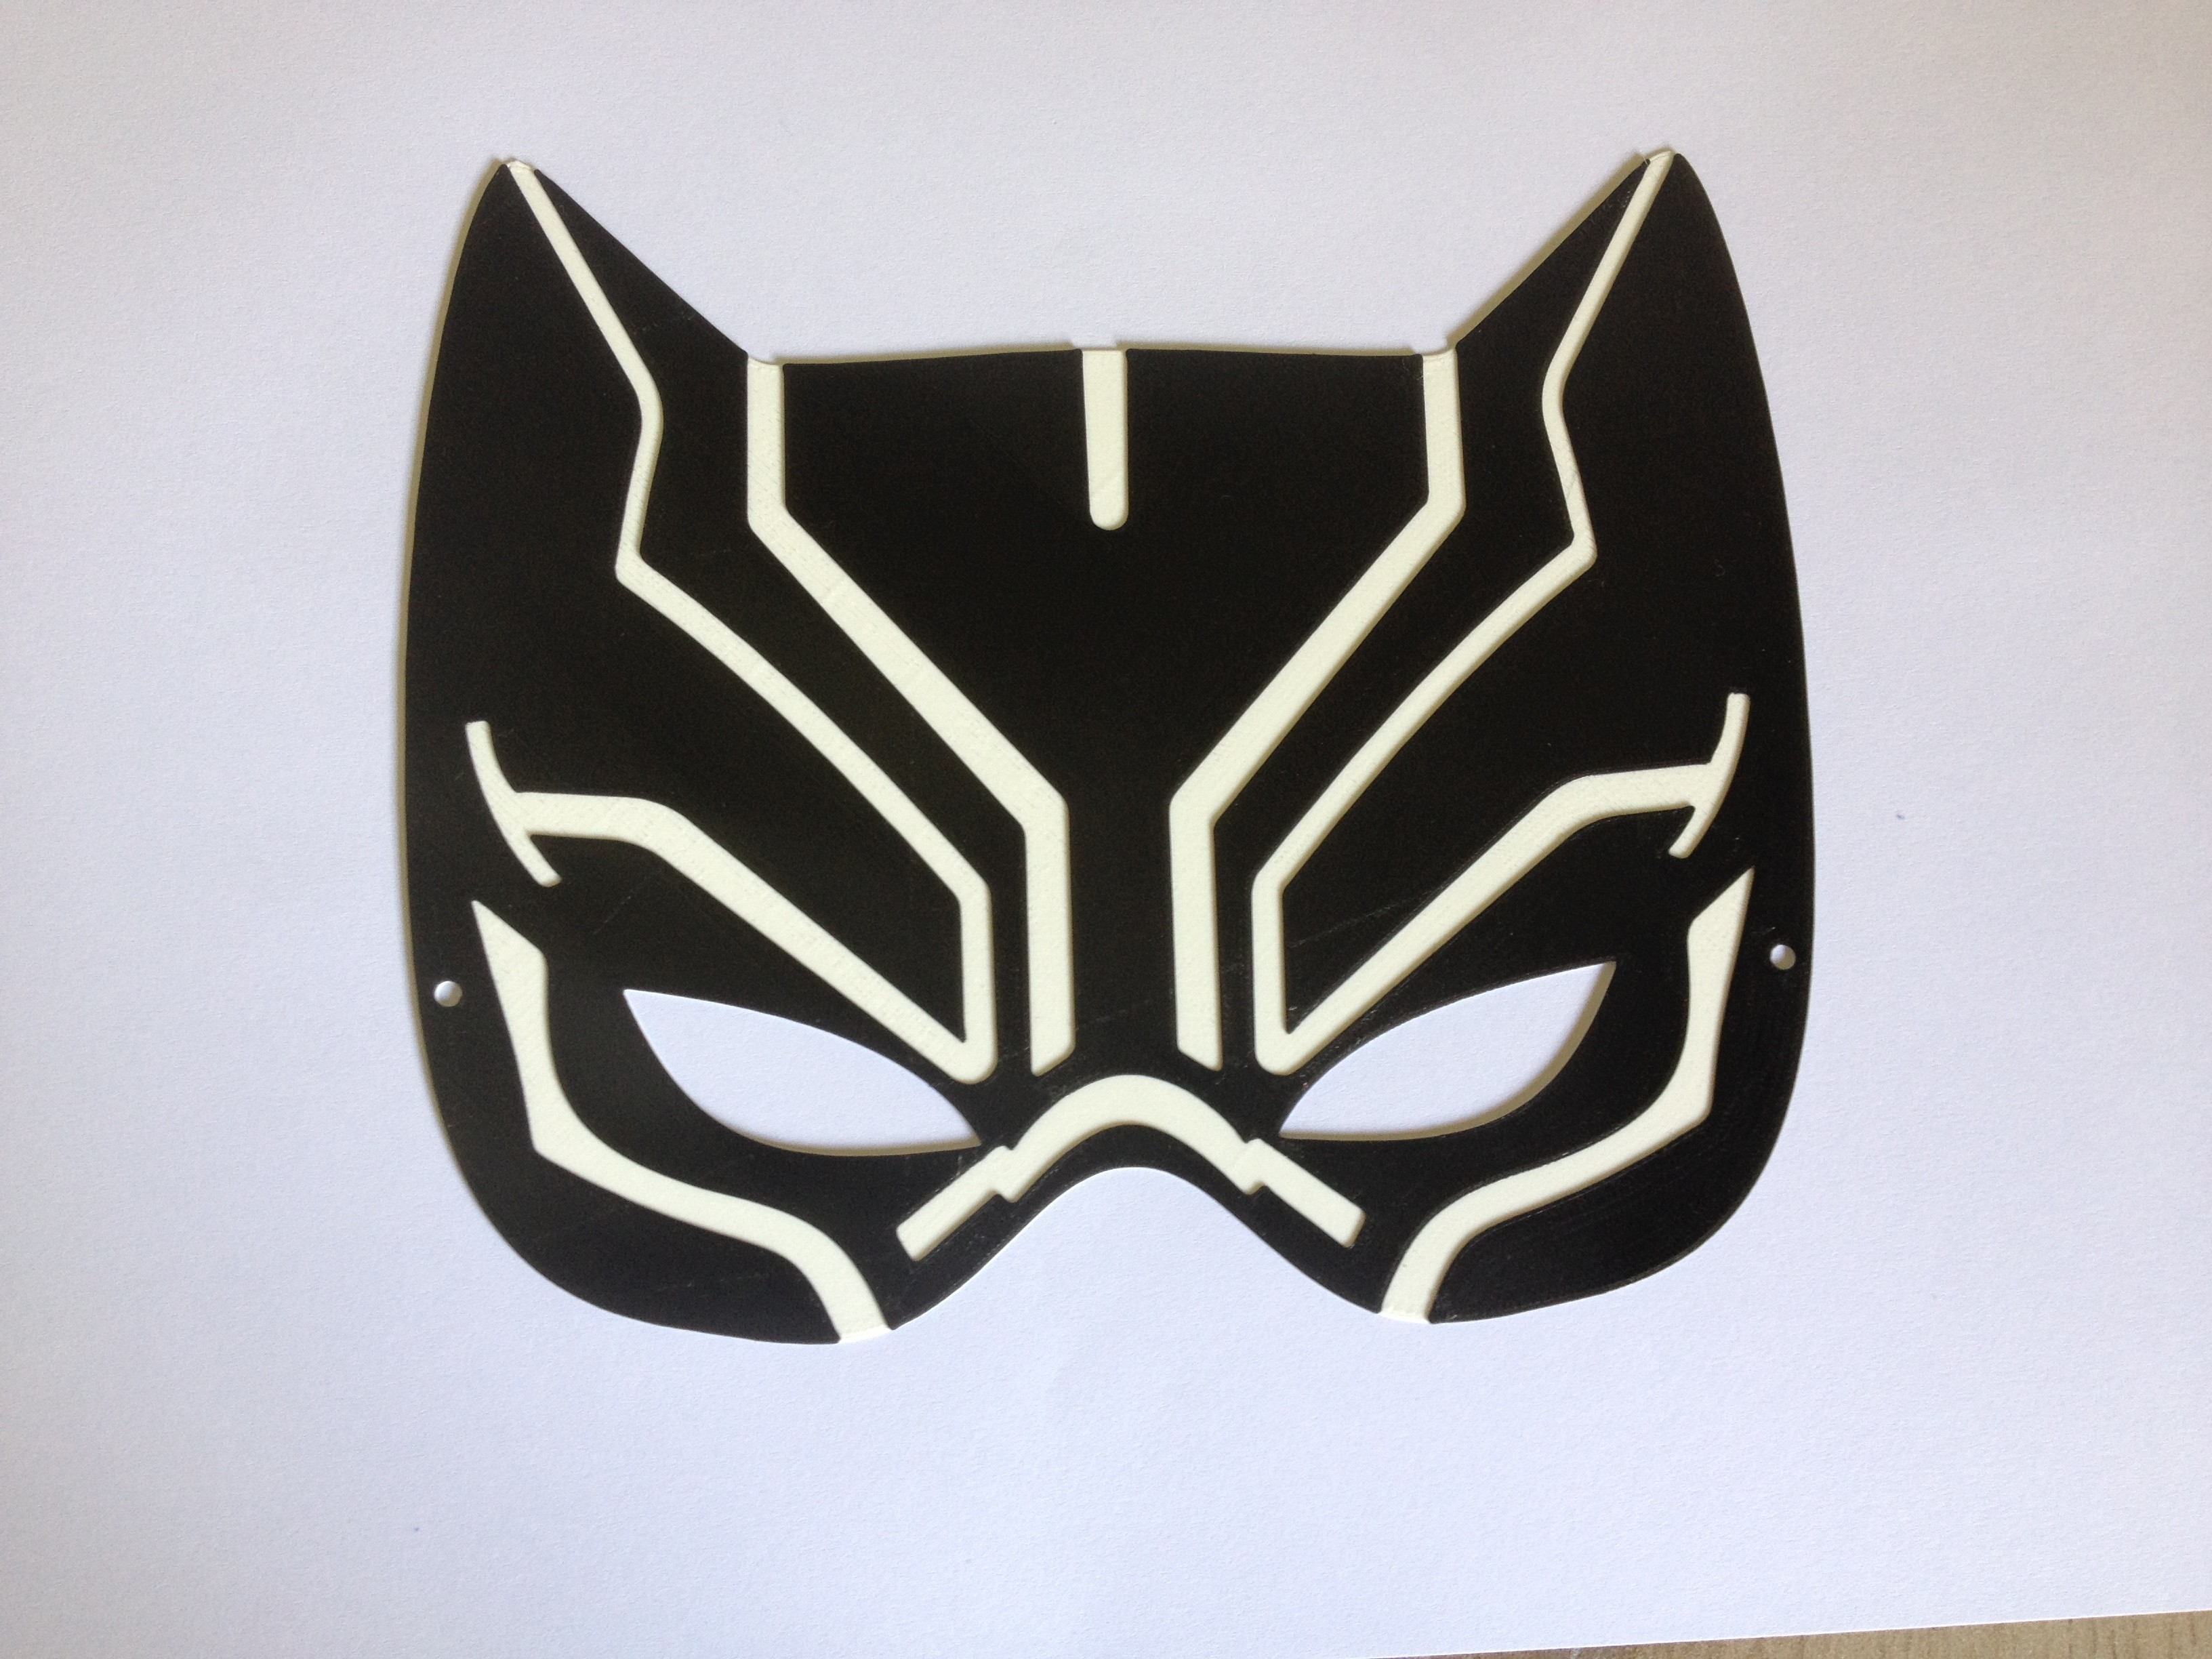 IMG_4014.JPG Download STL file Black Panther mask / Masque la Panthère Noire • 3D printing object, woody3d974